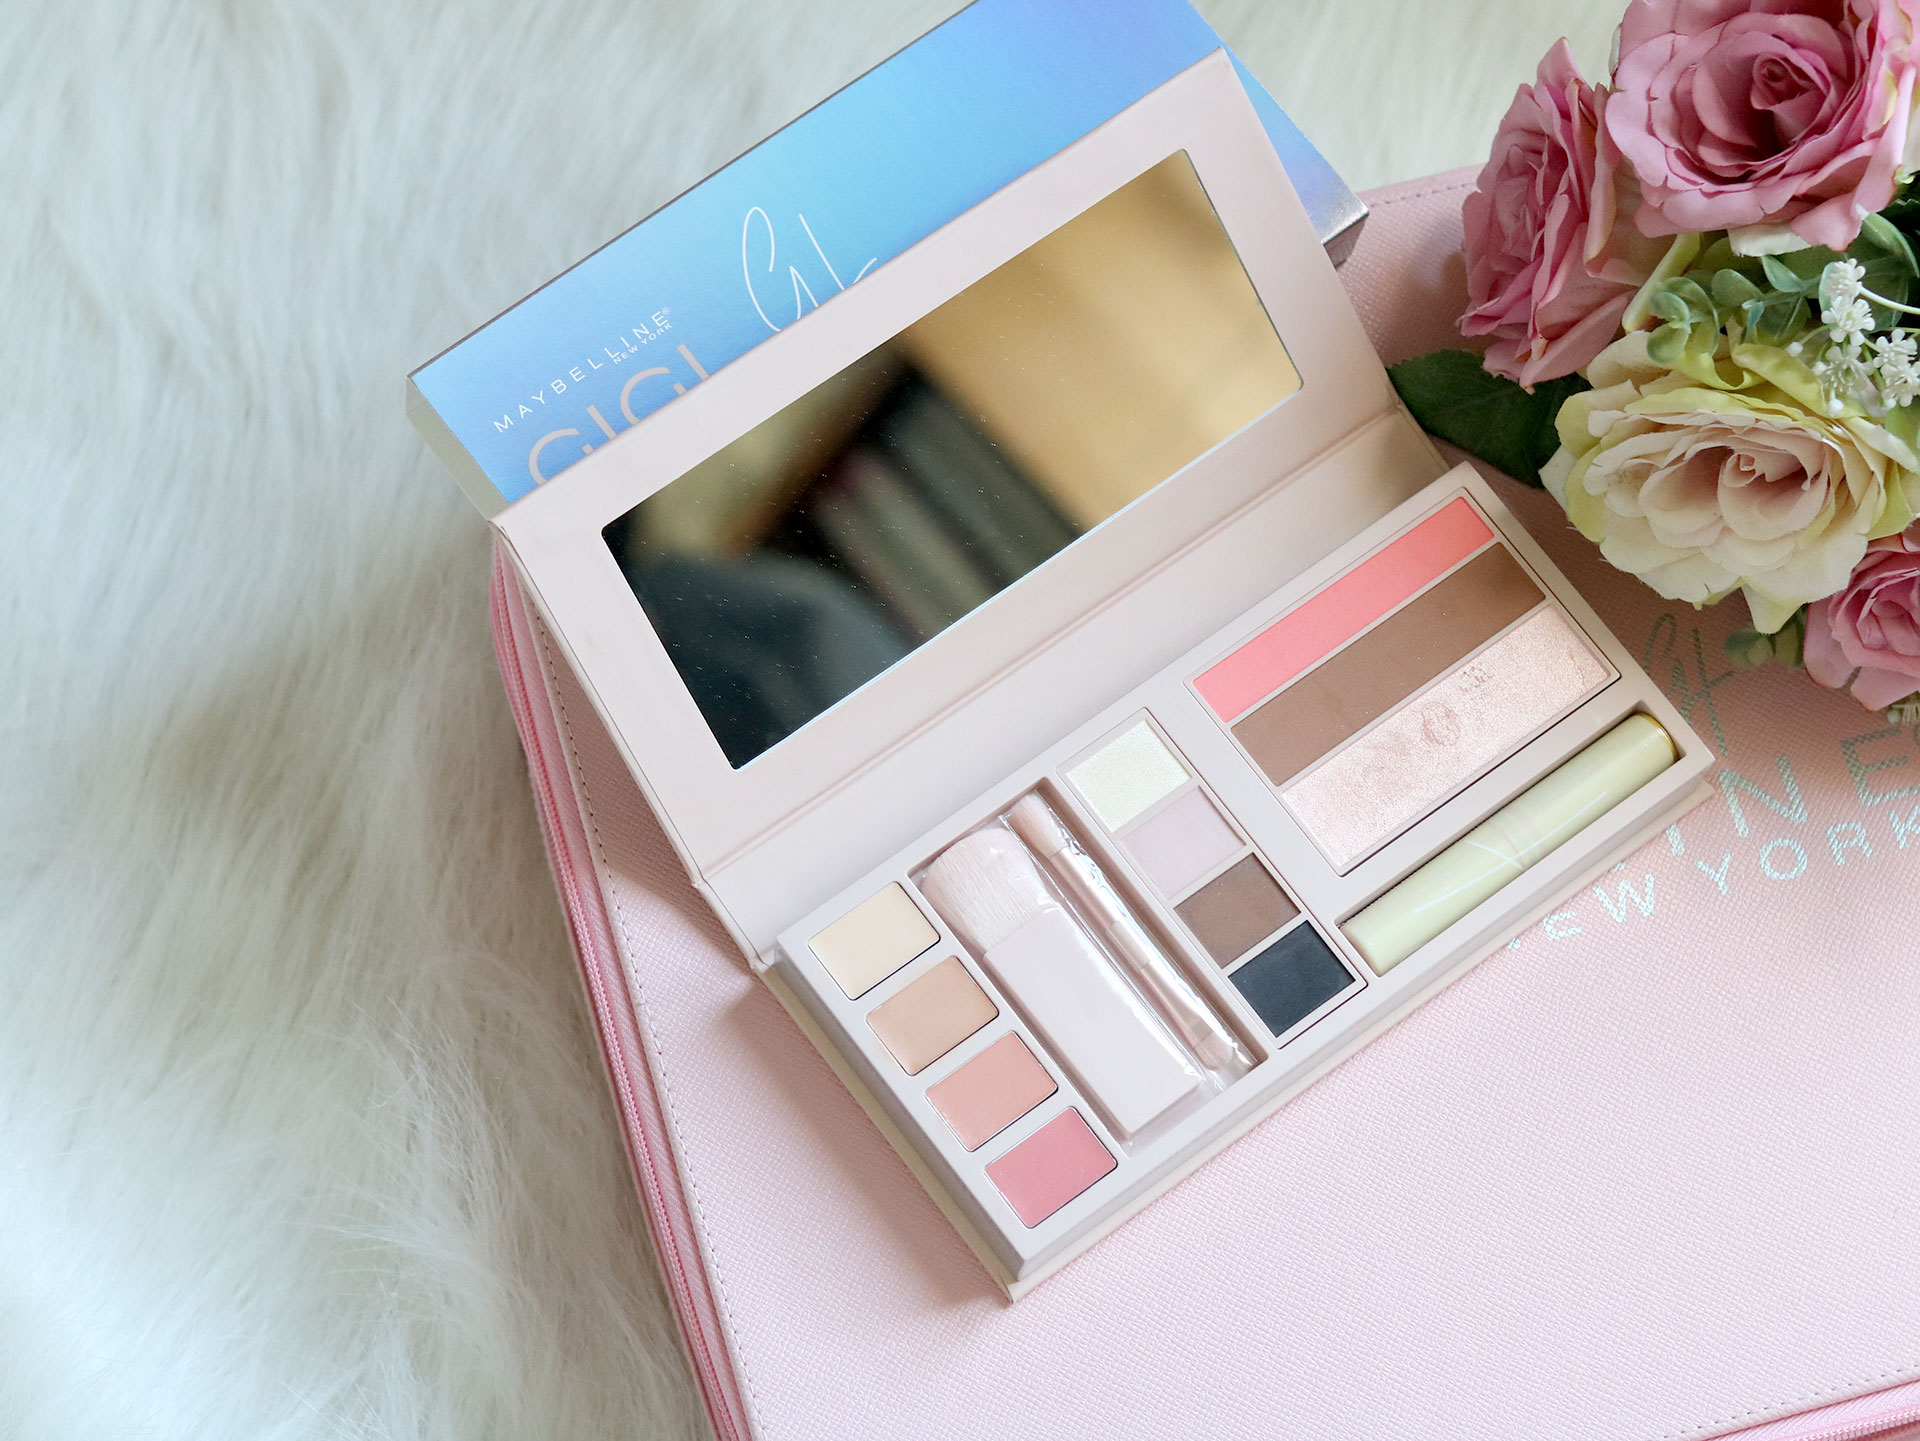 9 Gigi Hadid Maybelline Collection Review Swatches Photos - Jetsetter Palette - Gen-zel She Sings Beauty